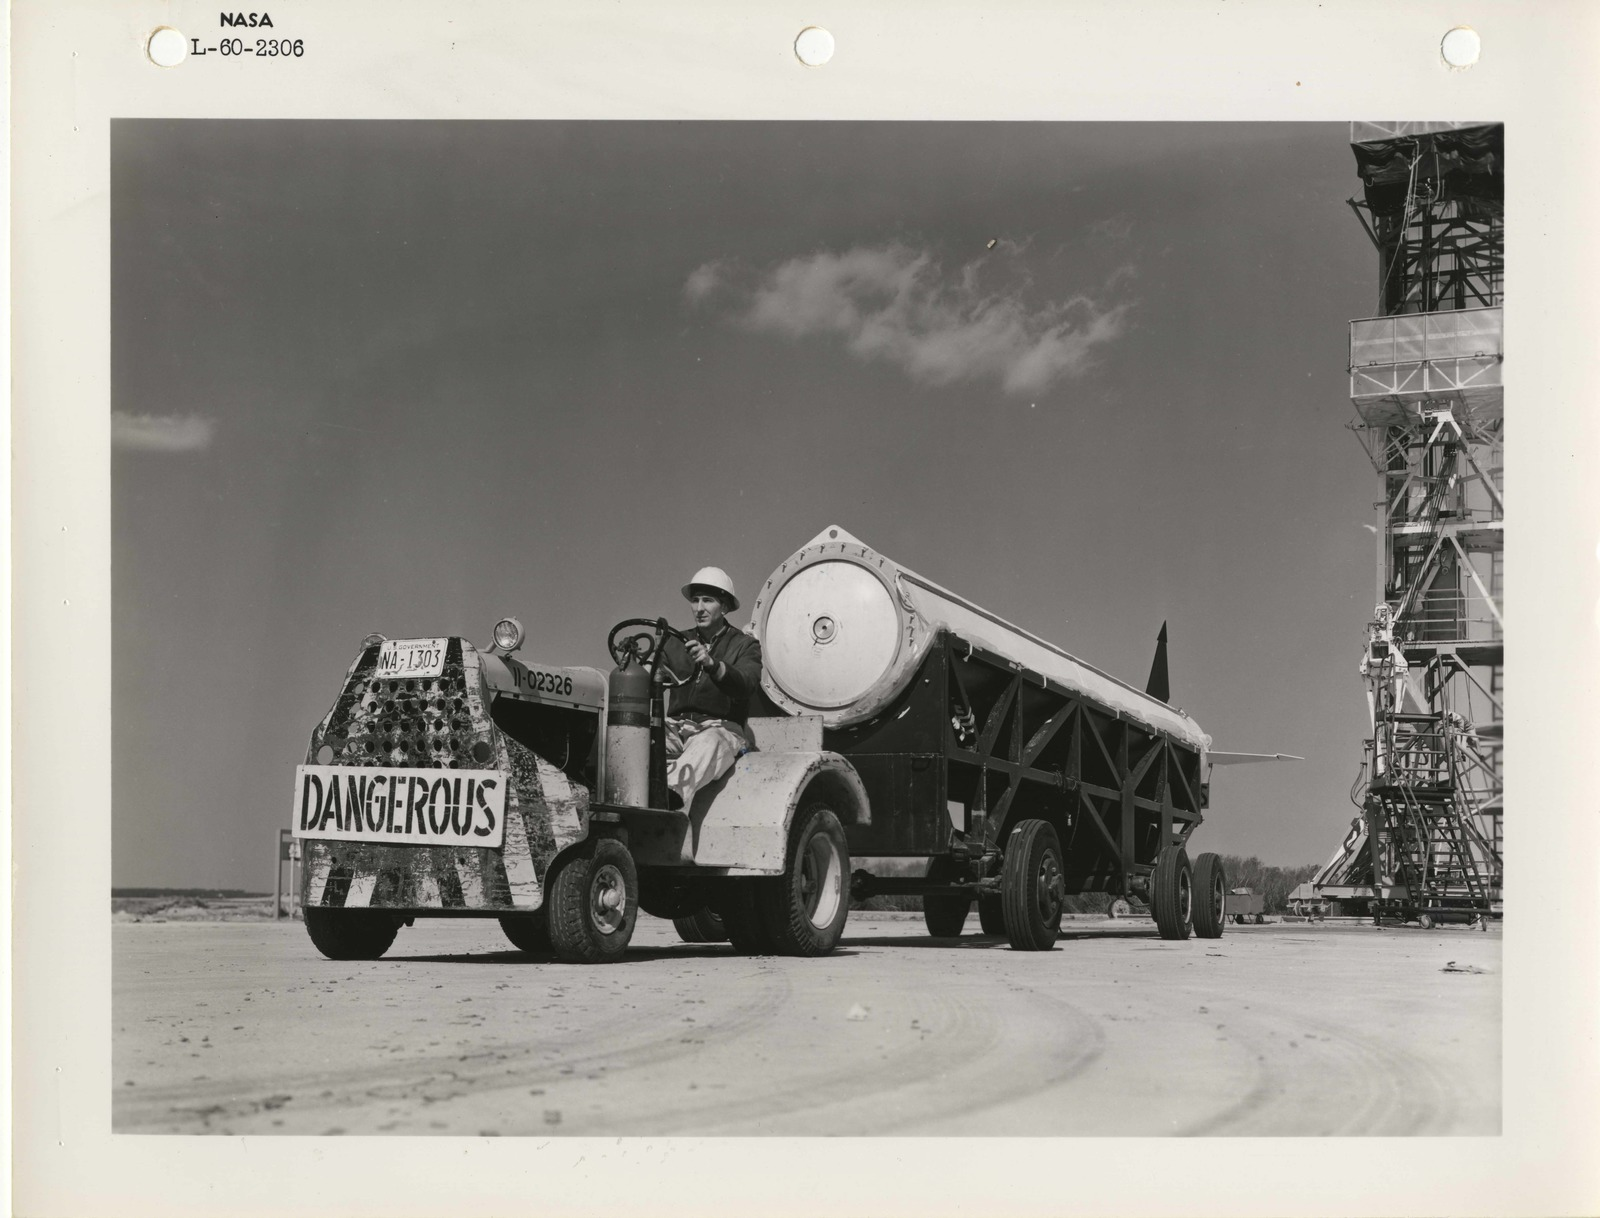 Photograph of a Scientist Driving a Rocket Part to a Launch Pad at the Langley Research Center in Hampton, Virginia